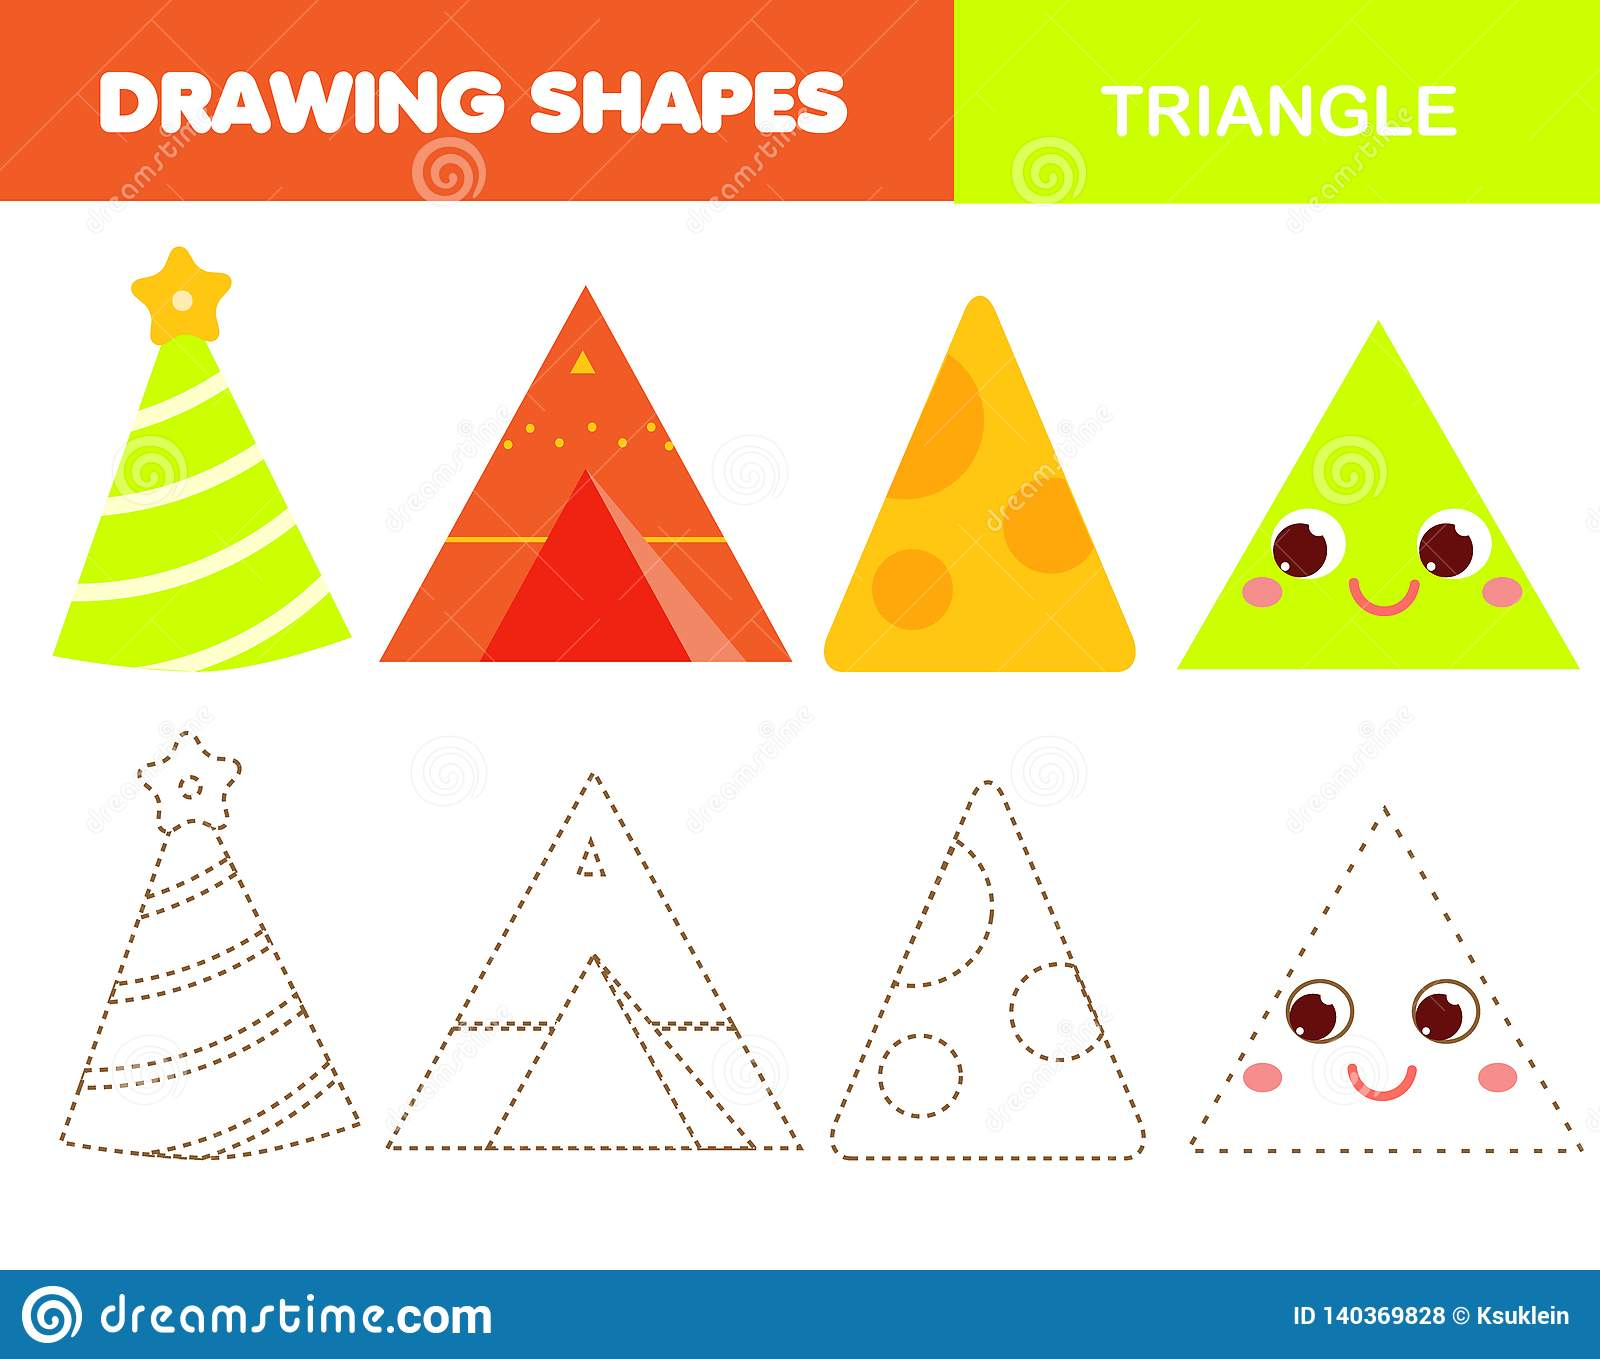 Learning Geometric Shapes For Kids Triangle Handwriting